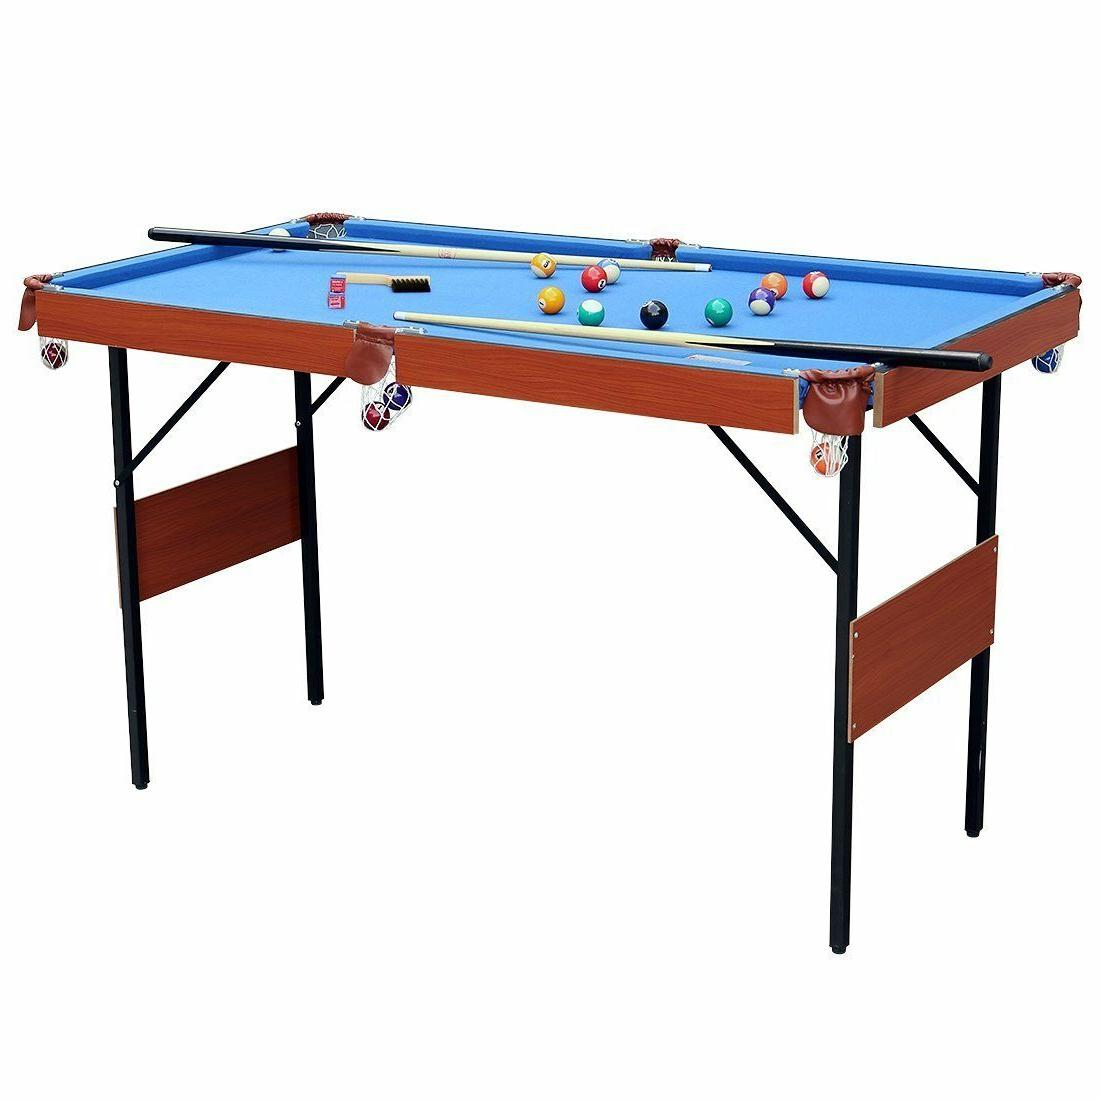 Indoor Billiard Game Table Balls Cues Kids Gift